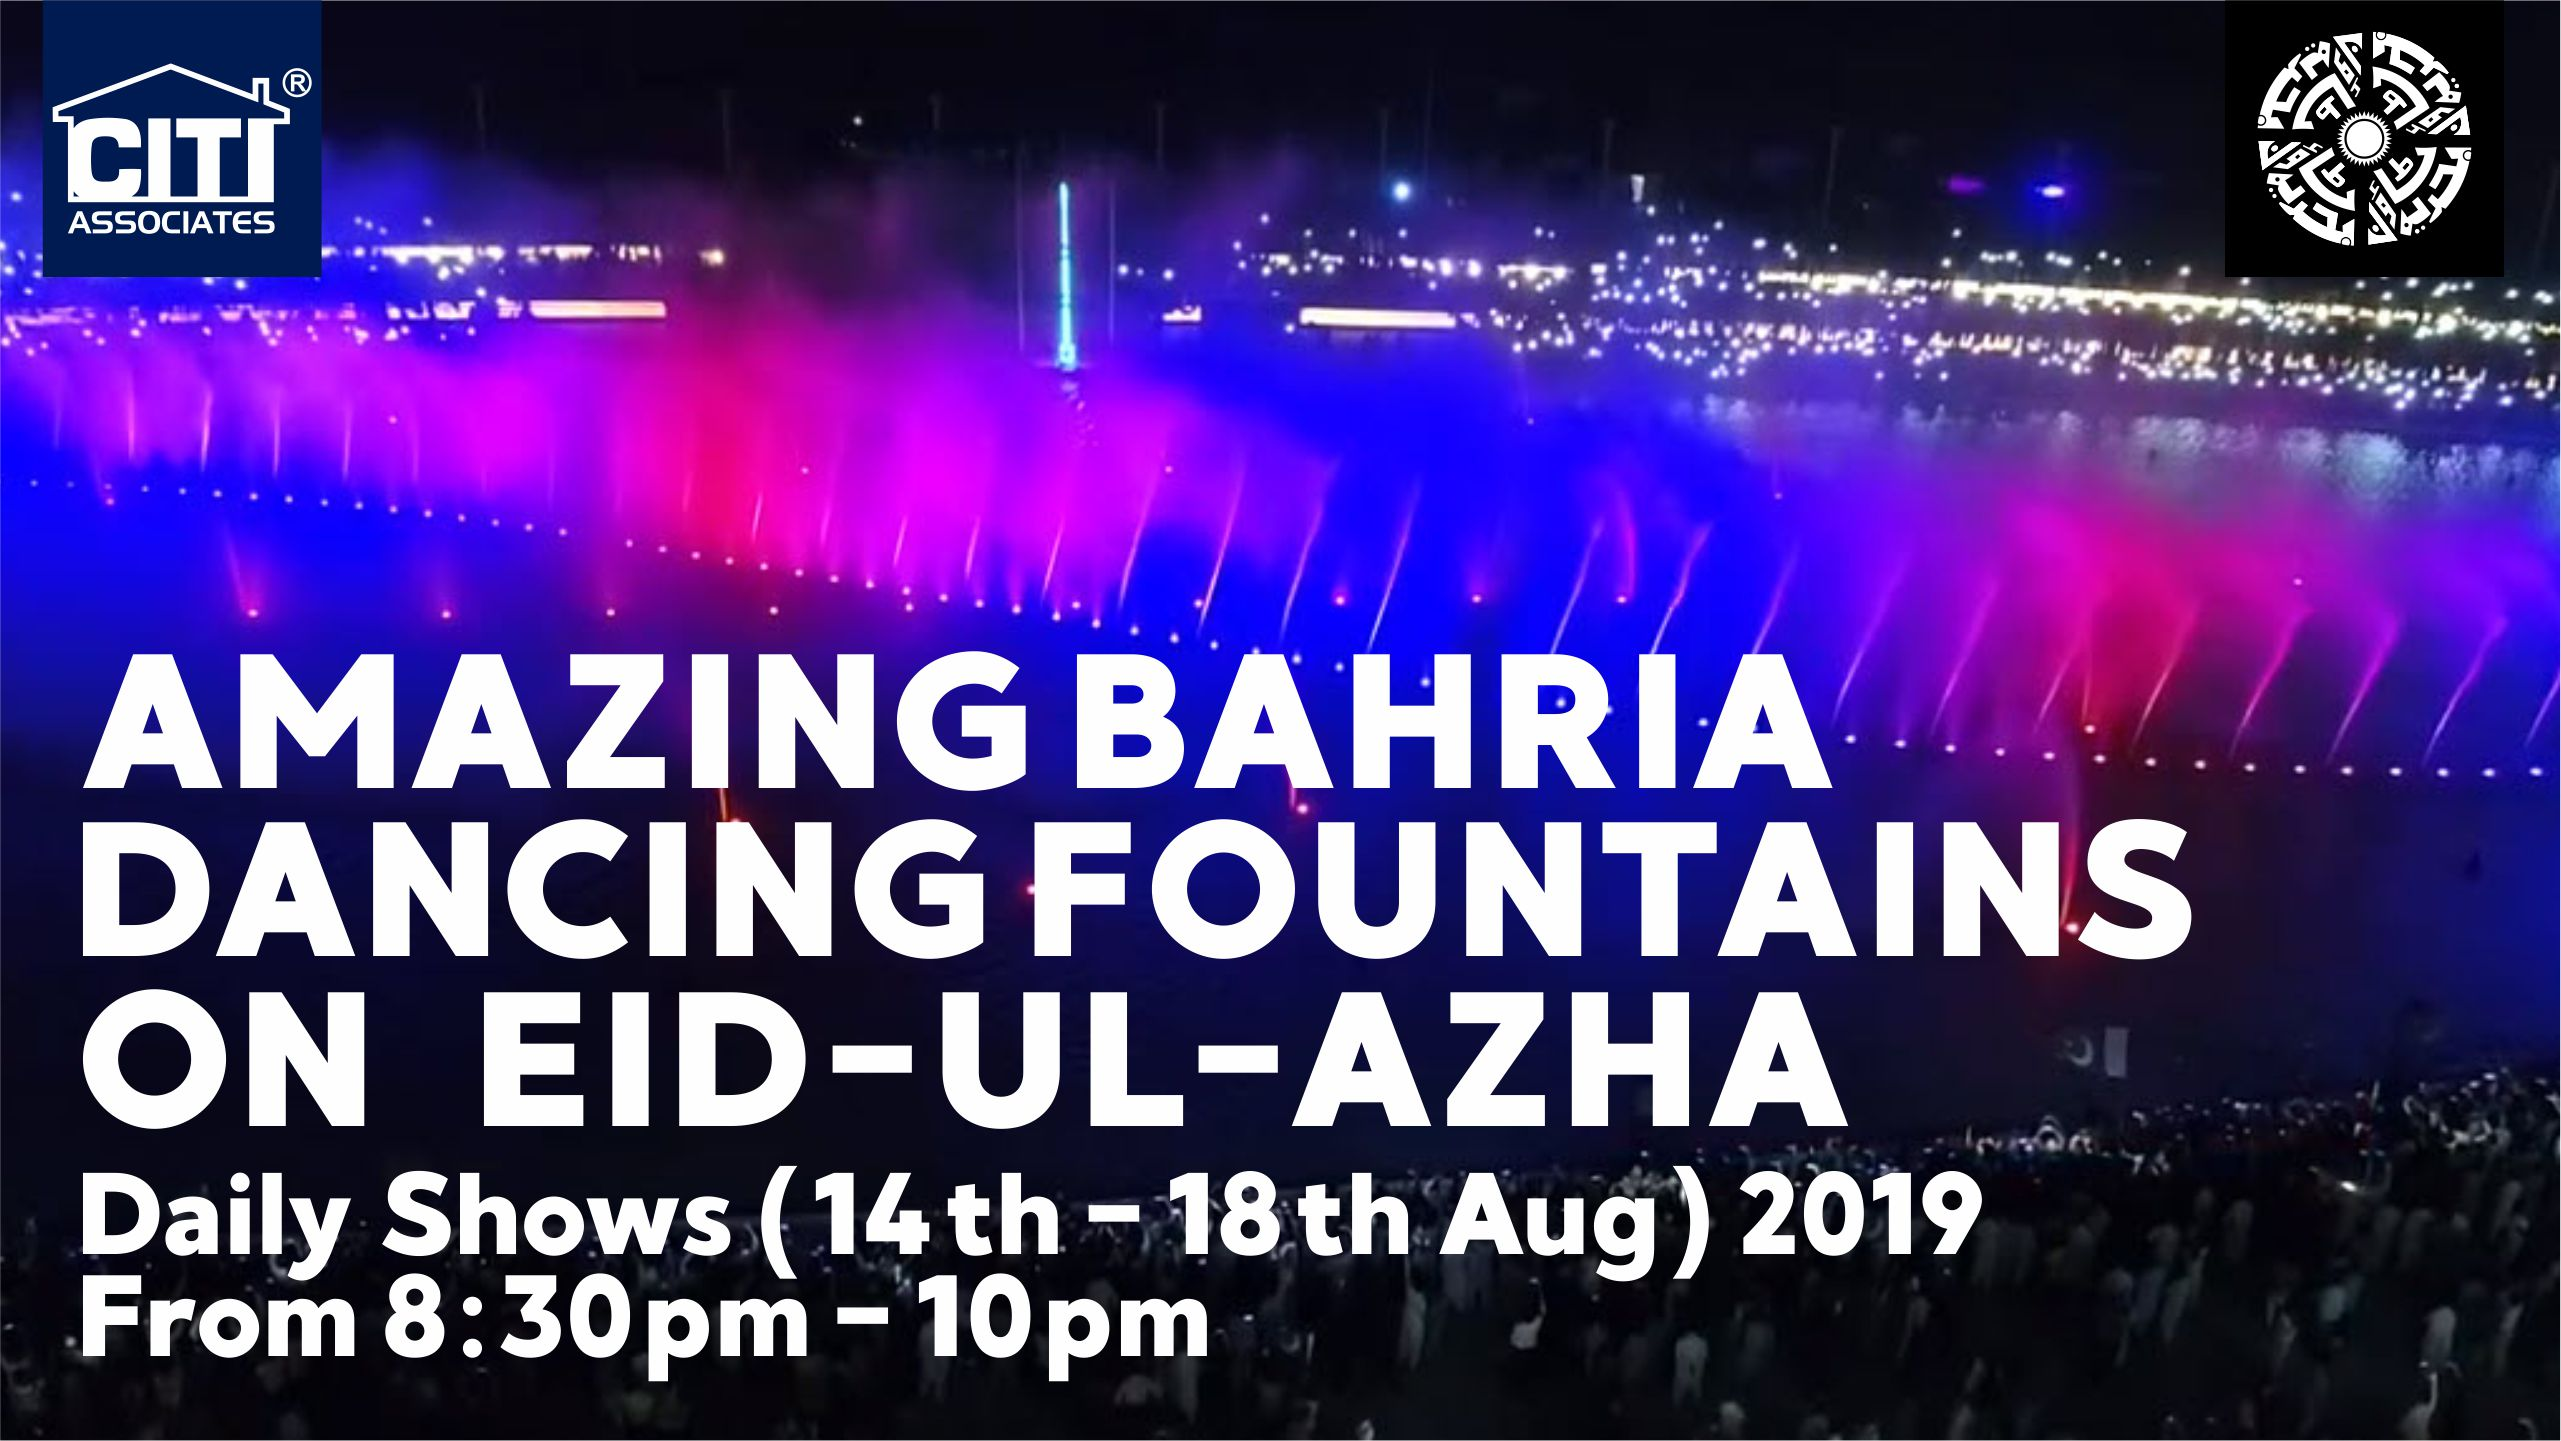 Amazing Bahria Dancing Fountains on Eid-ul-Azha 2019 | Bahria Town Karachi